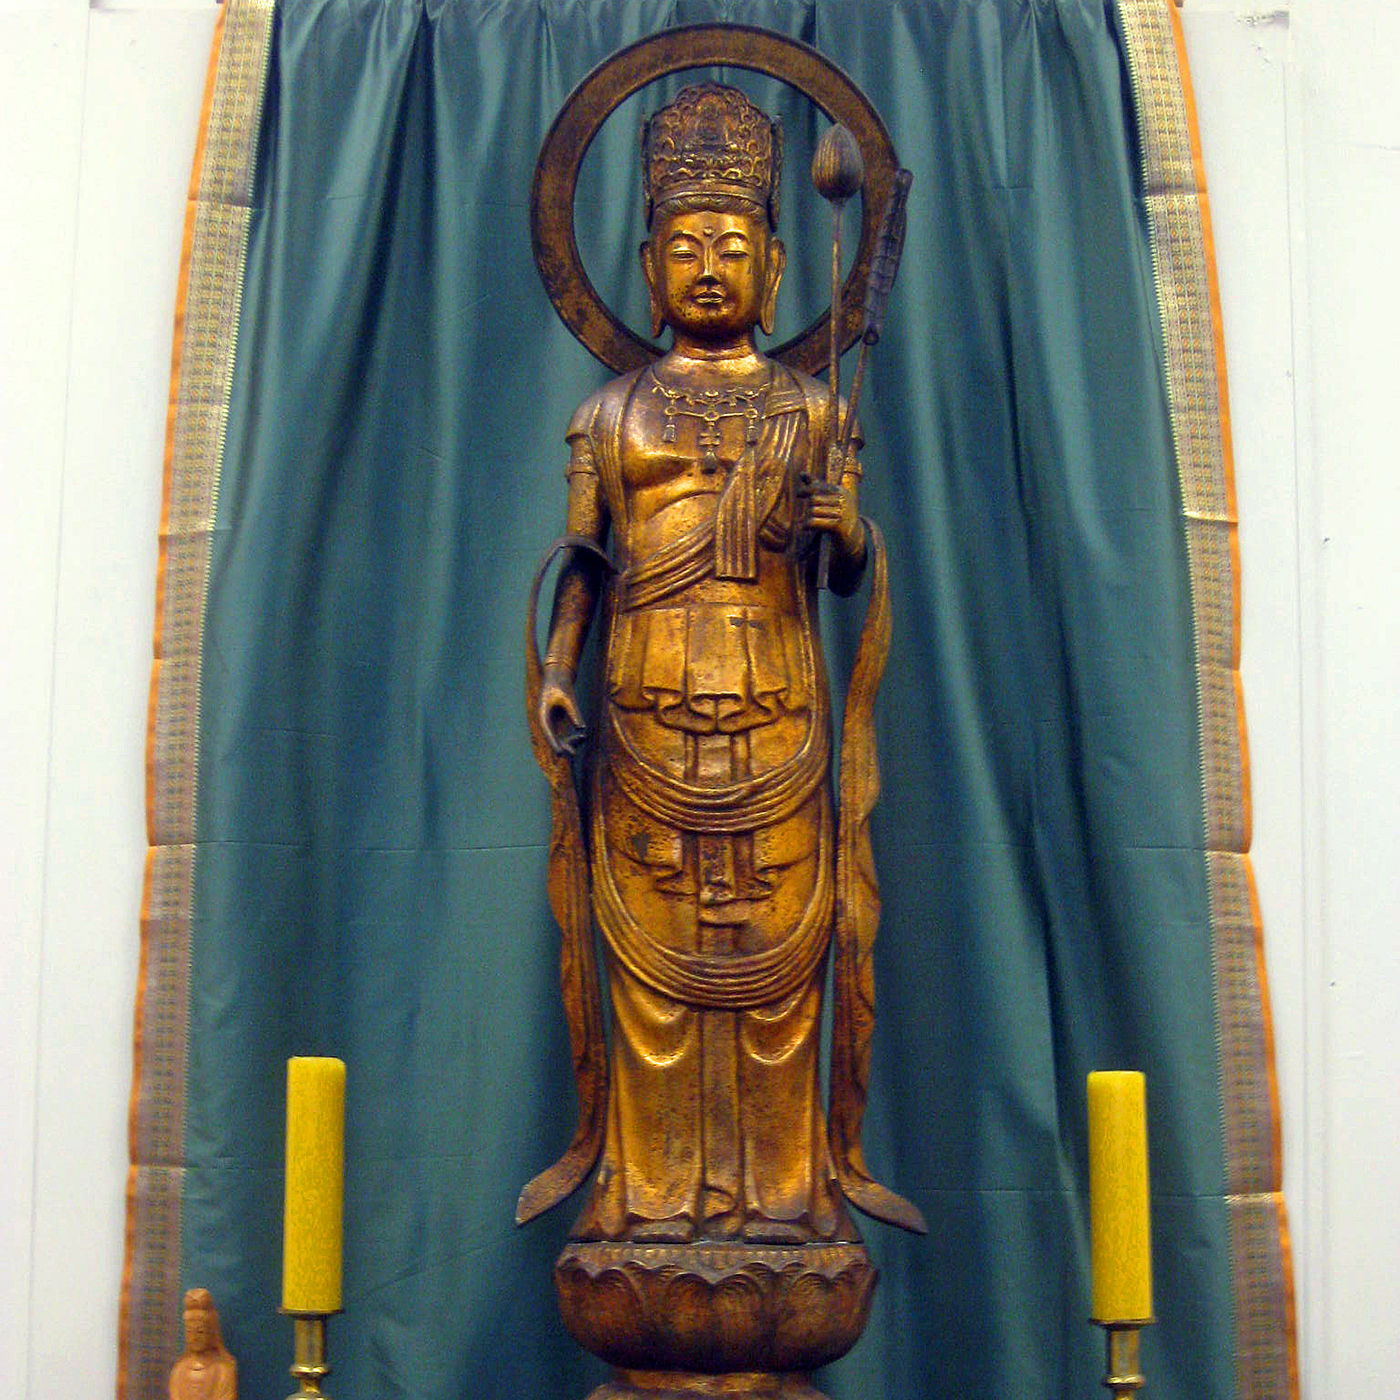 Talks on the Precepts and Buddhist Ethics